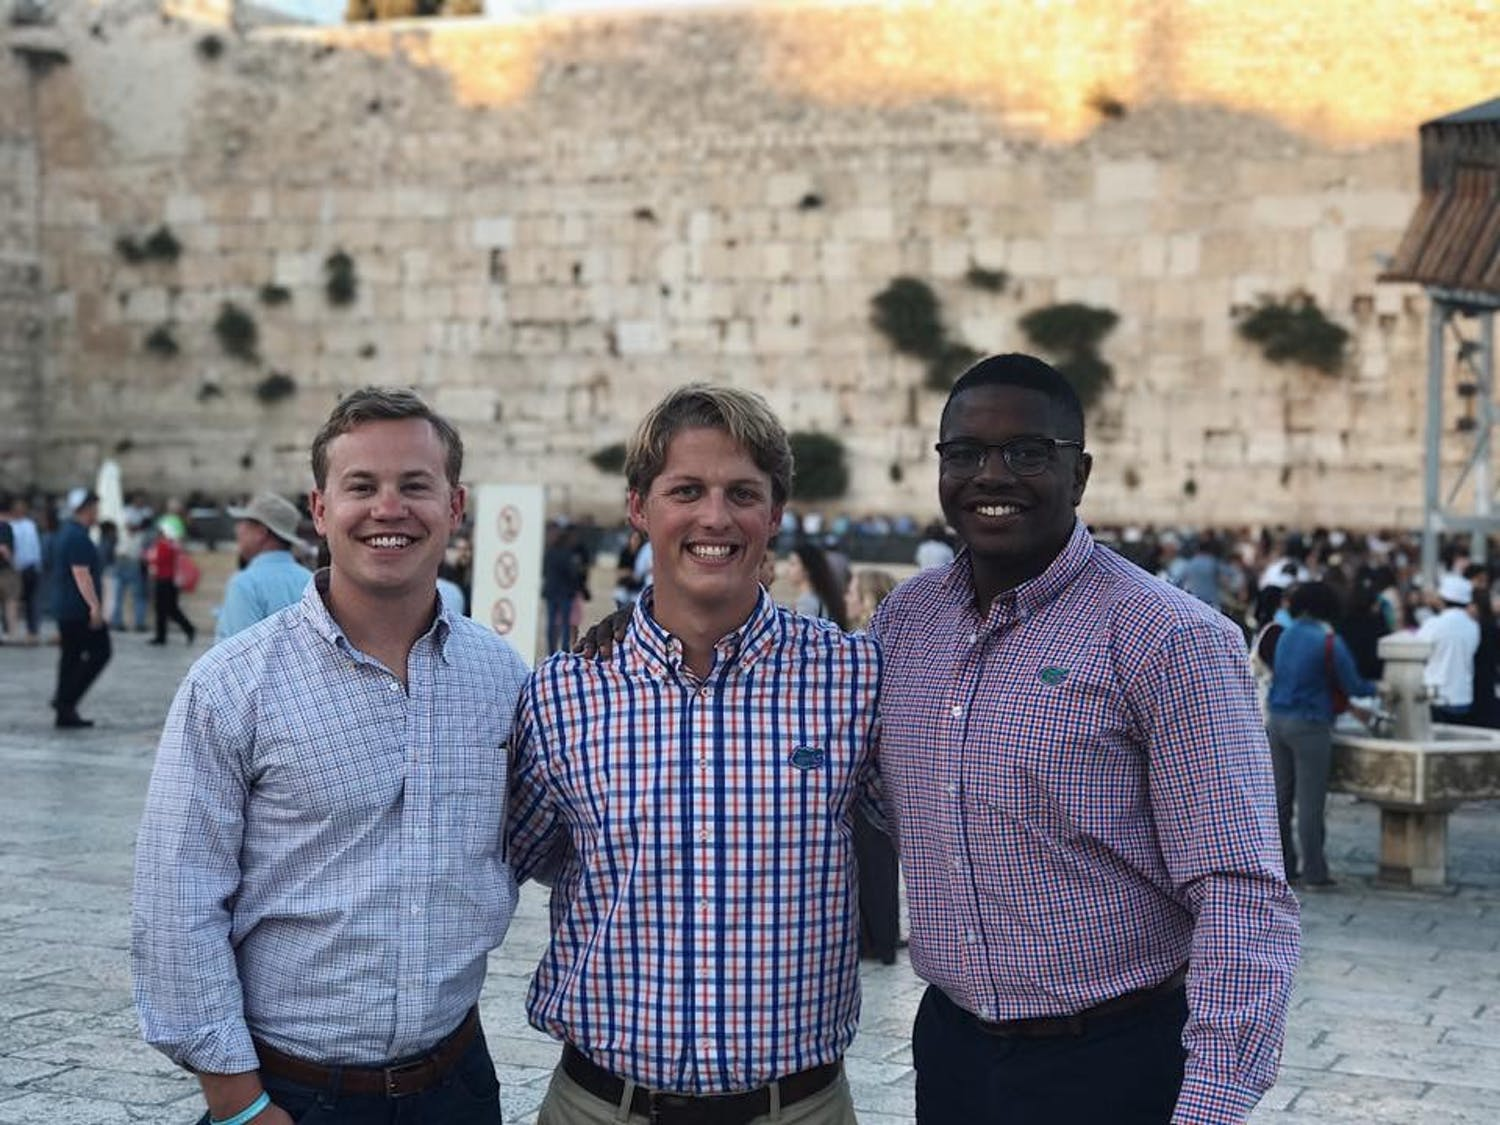 Michael Murphy stands with 2017-2018 UF Student Government President Smith Meyers and 2016-2017 SG Vice President Brendon Jonassaint at the Western Wall in Israel.